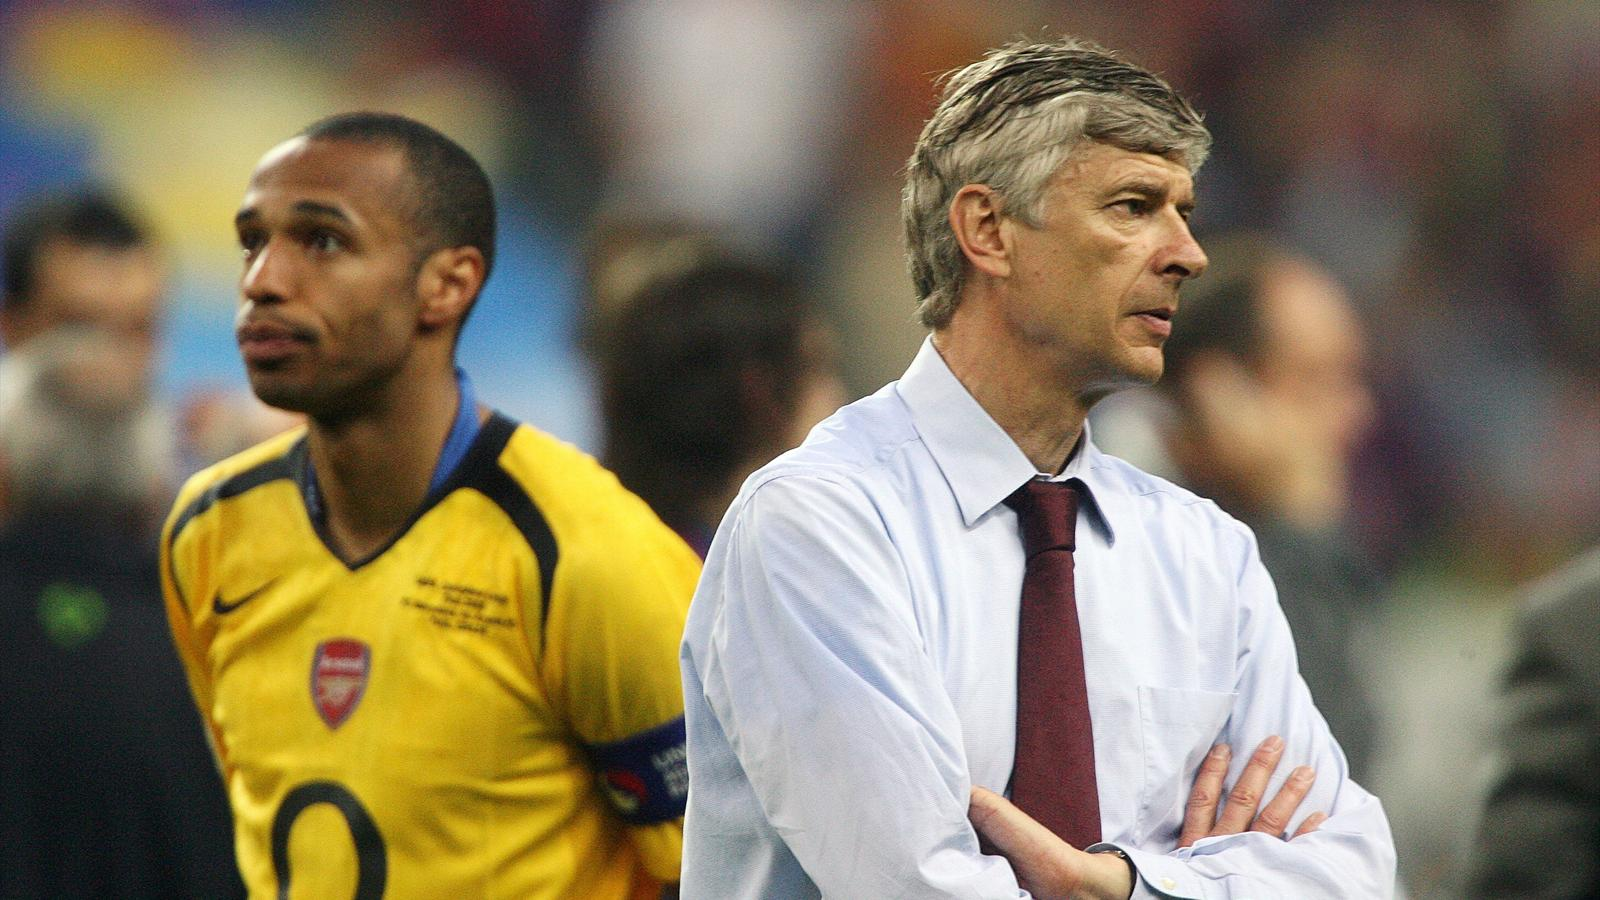 Arsenal's Thierry Henry of France (L) and manager Arsene Wenger, also of France, stand on the pitch after losing the Champions League final